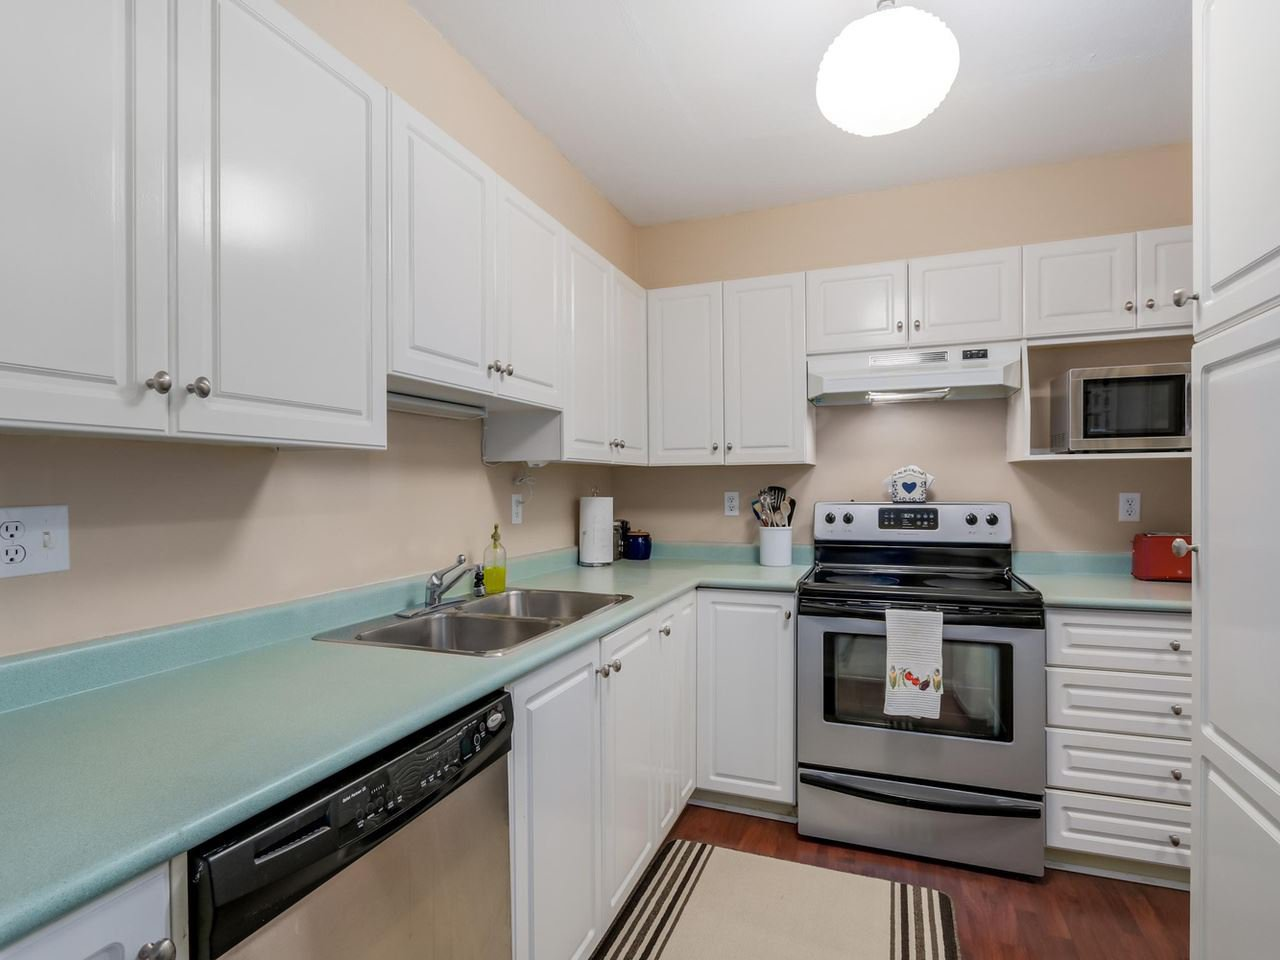 Photo 6: Photos: 107 515 WHITING Way in Coquitlam: Coquitlam West Condo for sale : MLS®# R2073119